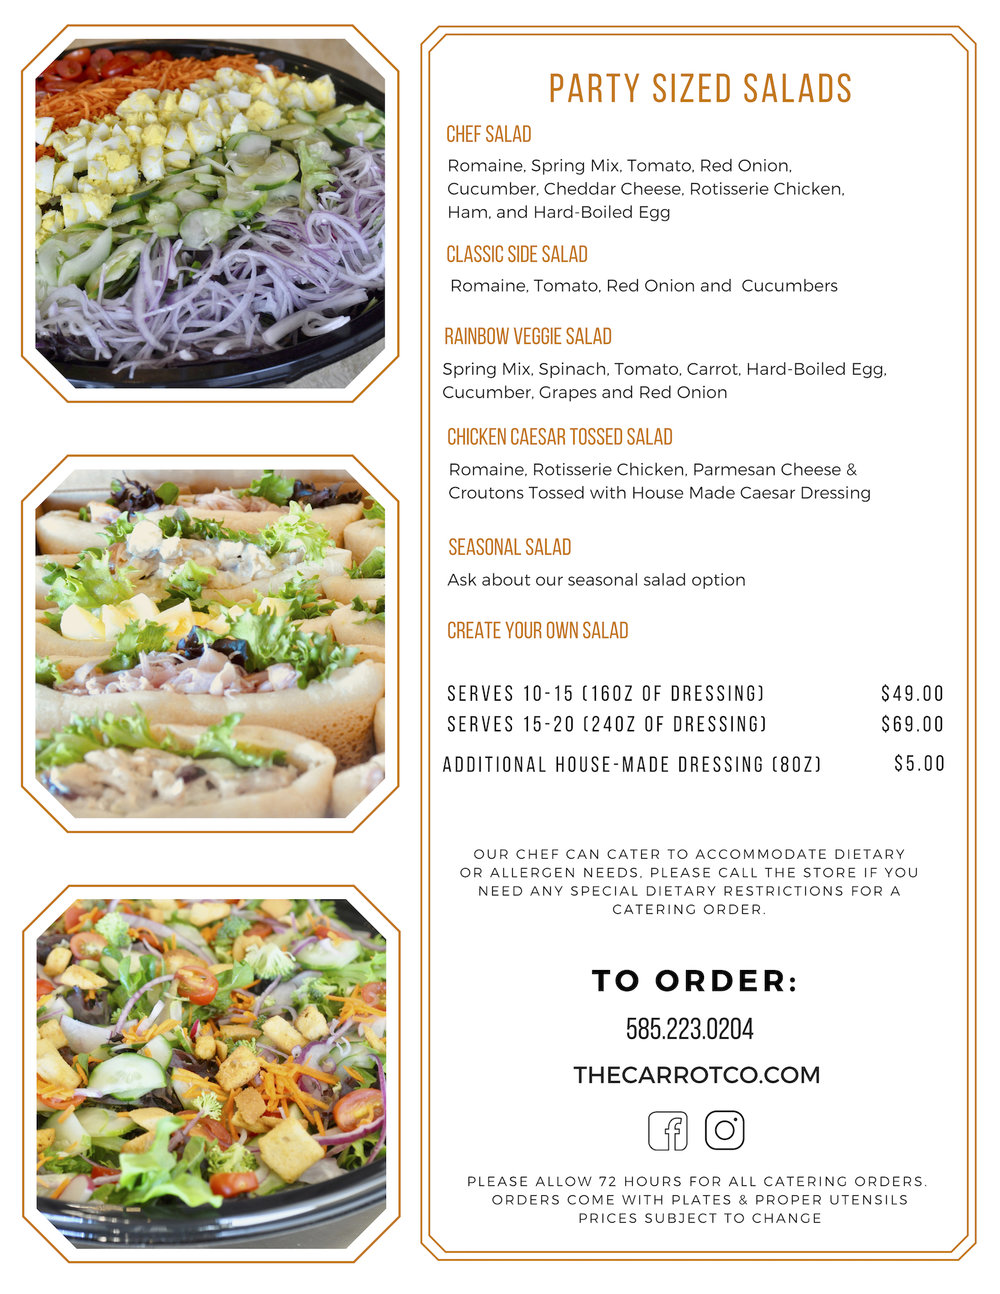 Carrot Company Catering Menu - Page 2.jpg